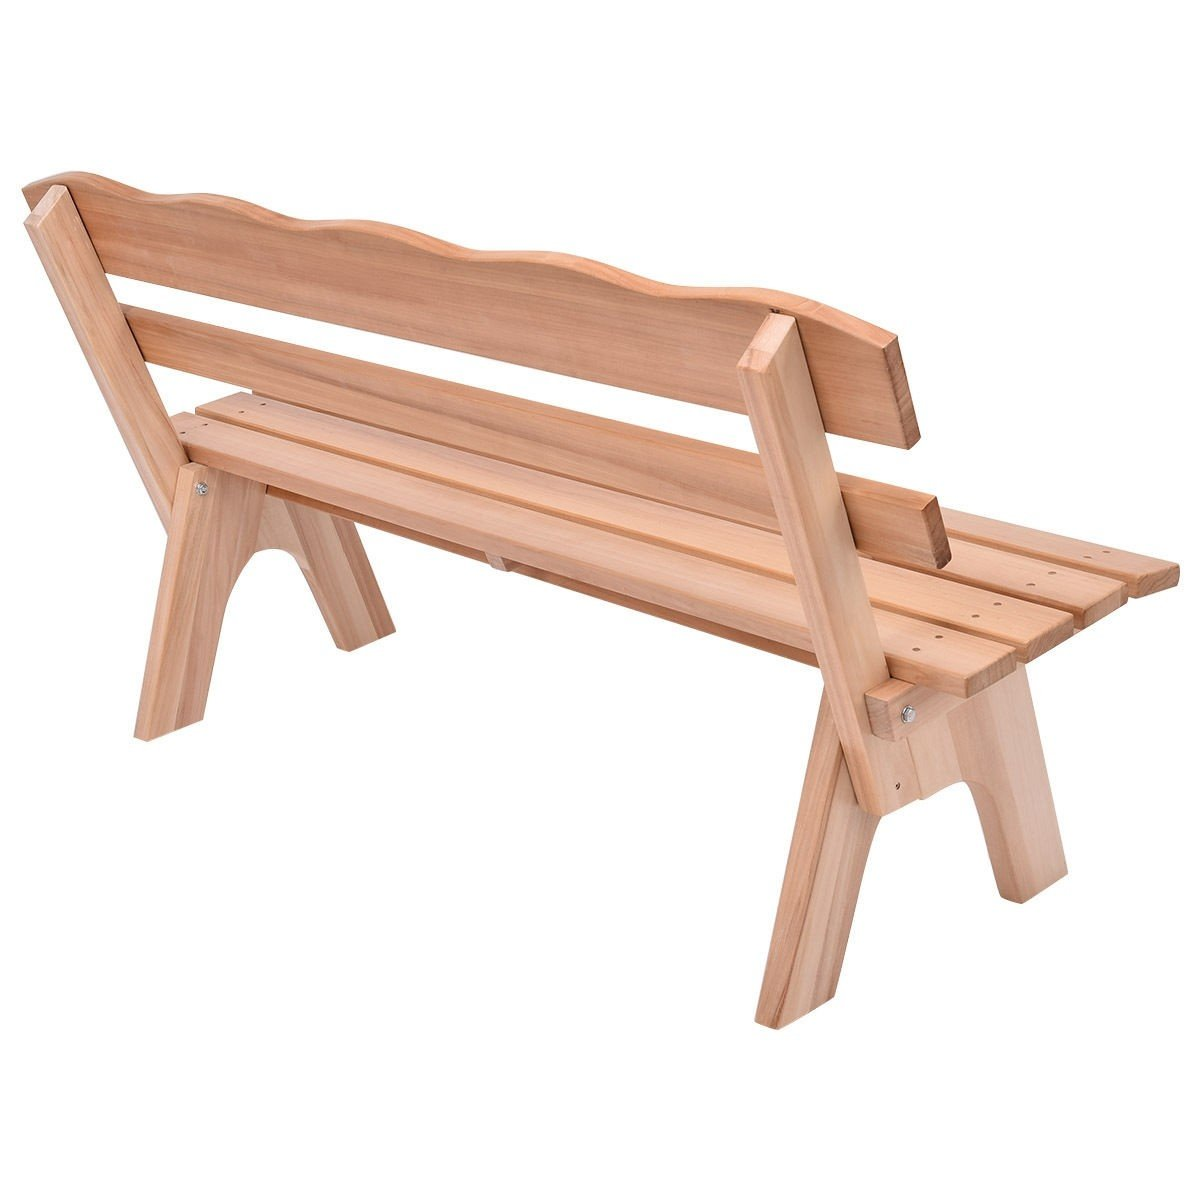 MD Group 5 ft 3 Seats Outdoor Wooden Garden Bench Chair, Brown by MD Group (Image #8)